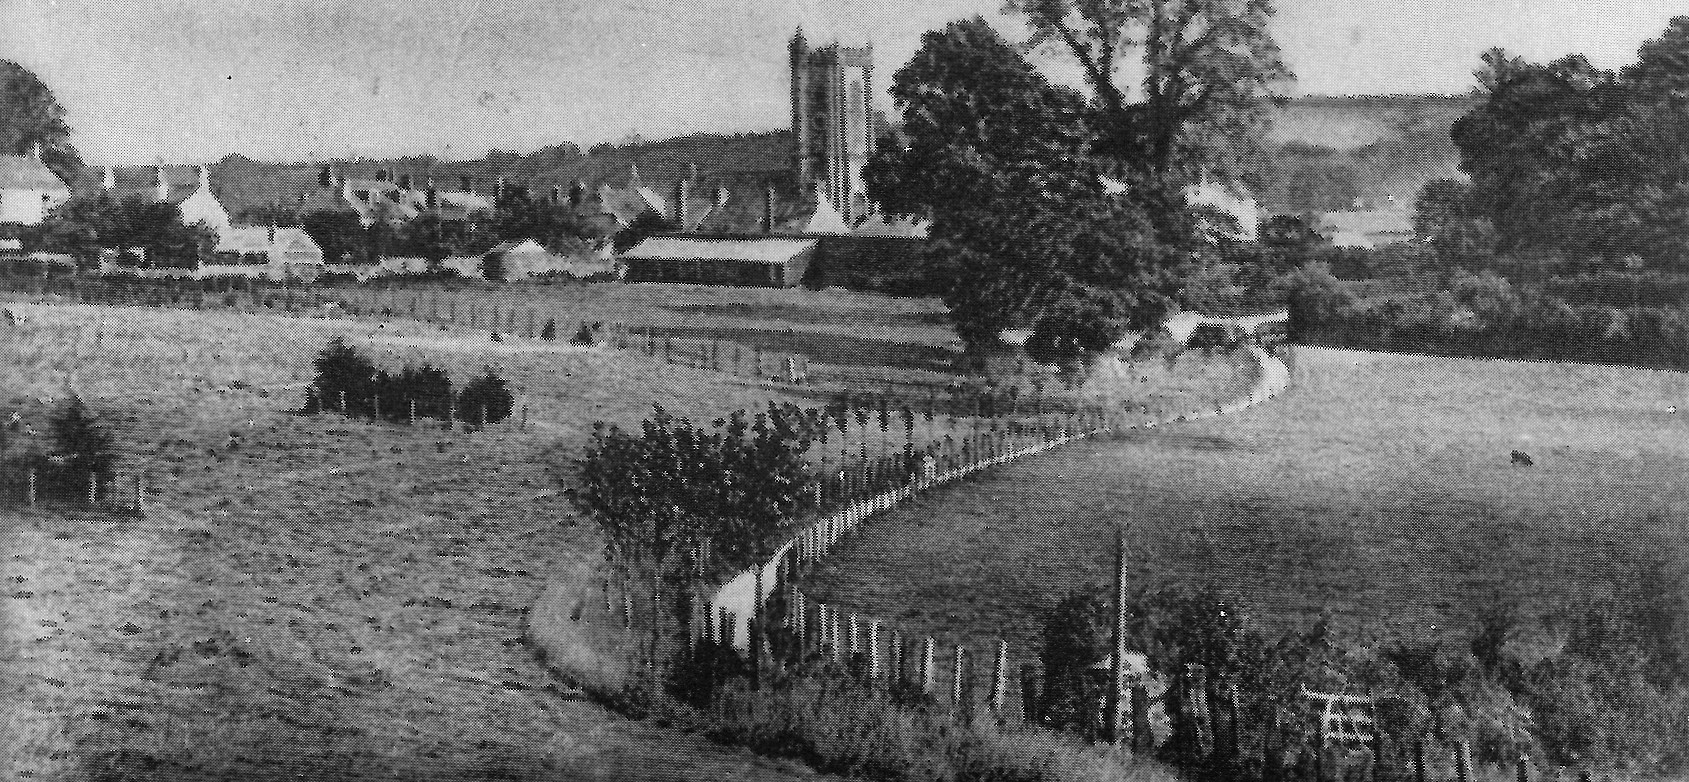 Pathfields before lime trees are established - circa 1897